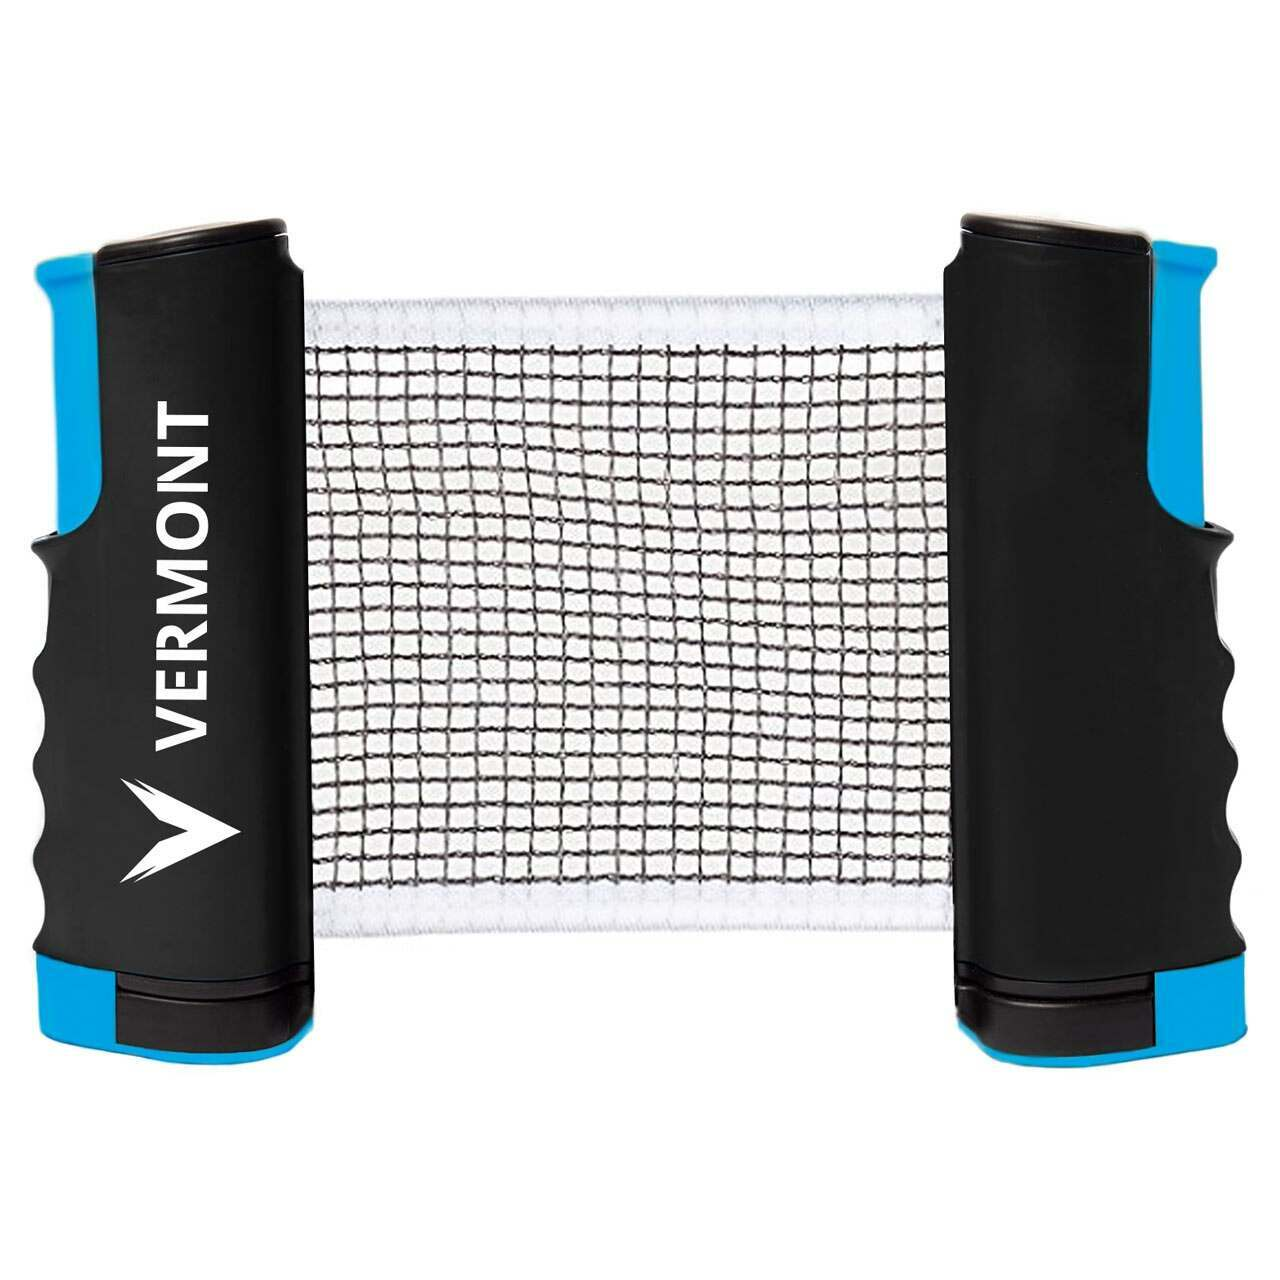 Vermont Portable Ping Pong Net